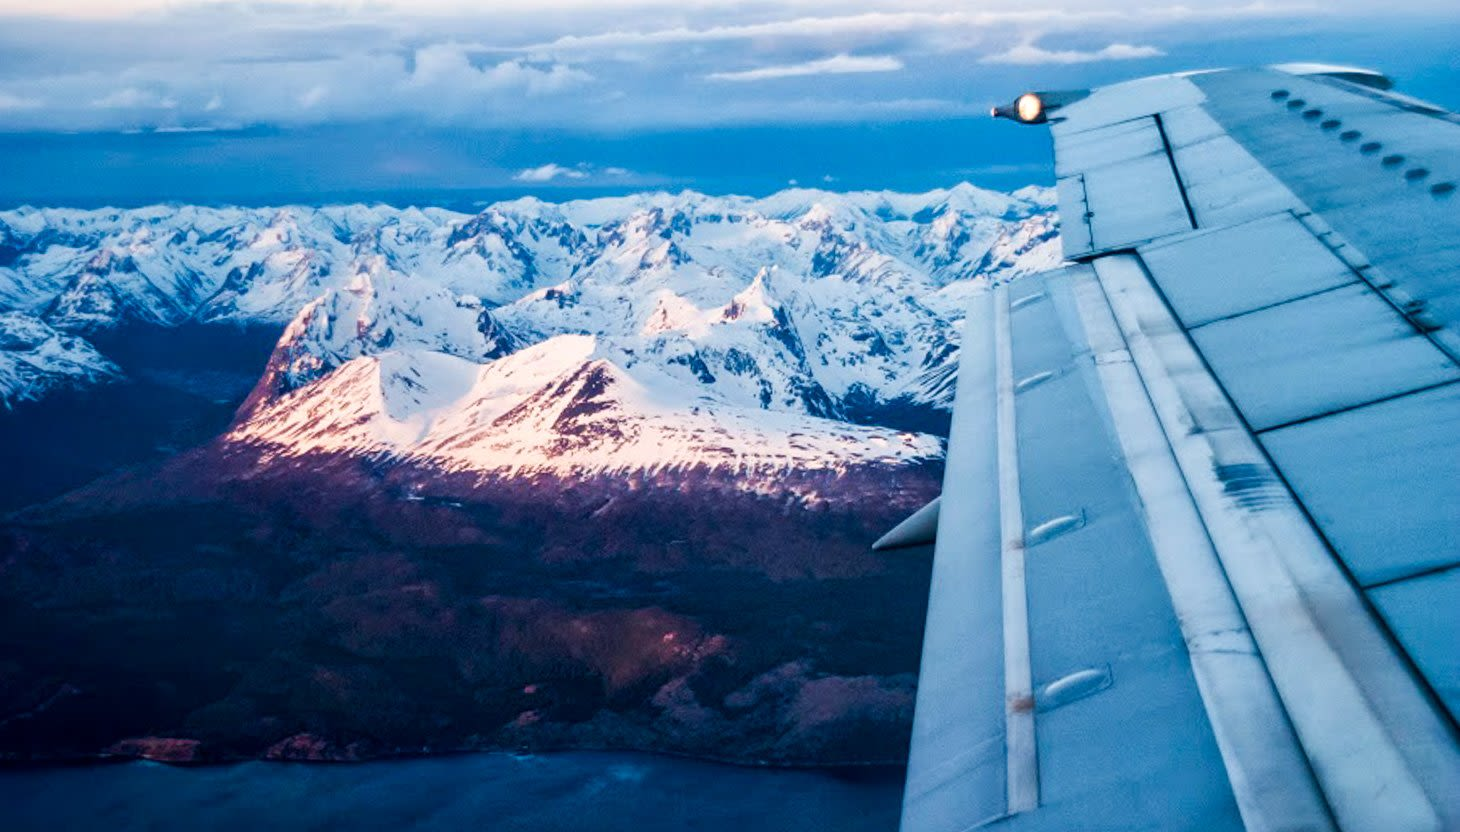 Airplane wing over Andes mountains near Ushaia, Argentina